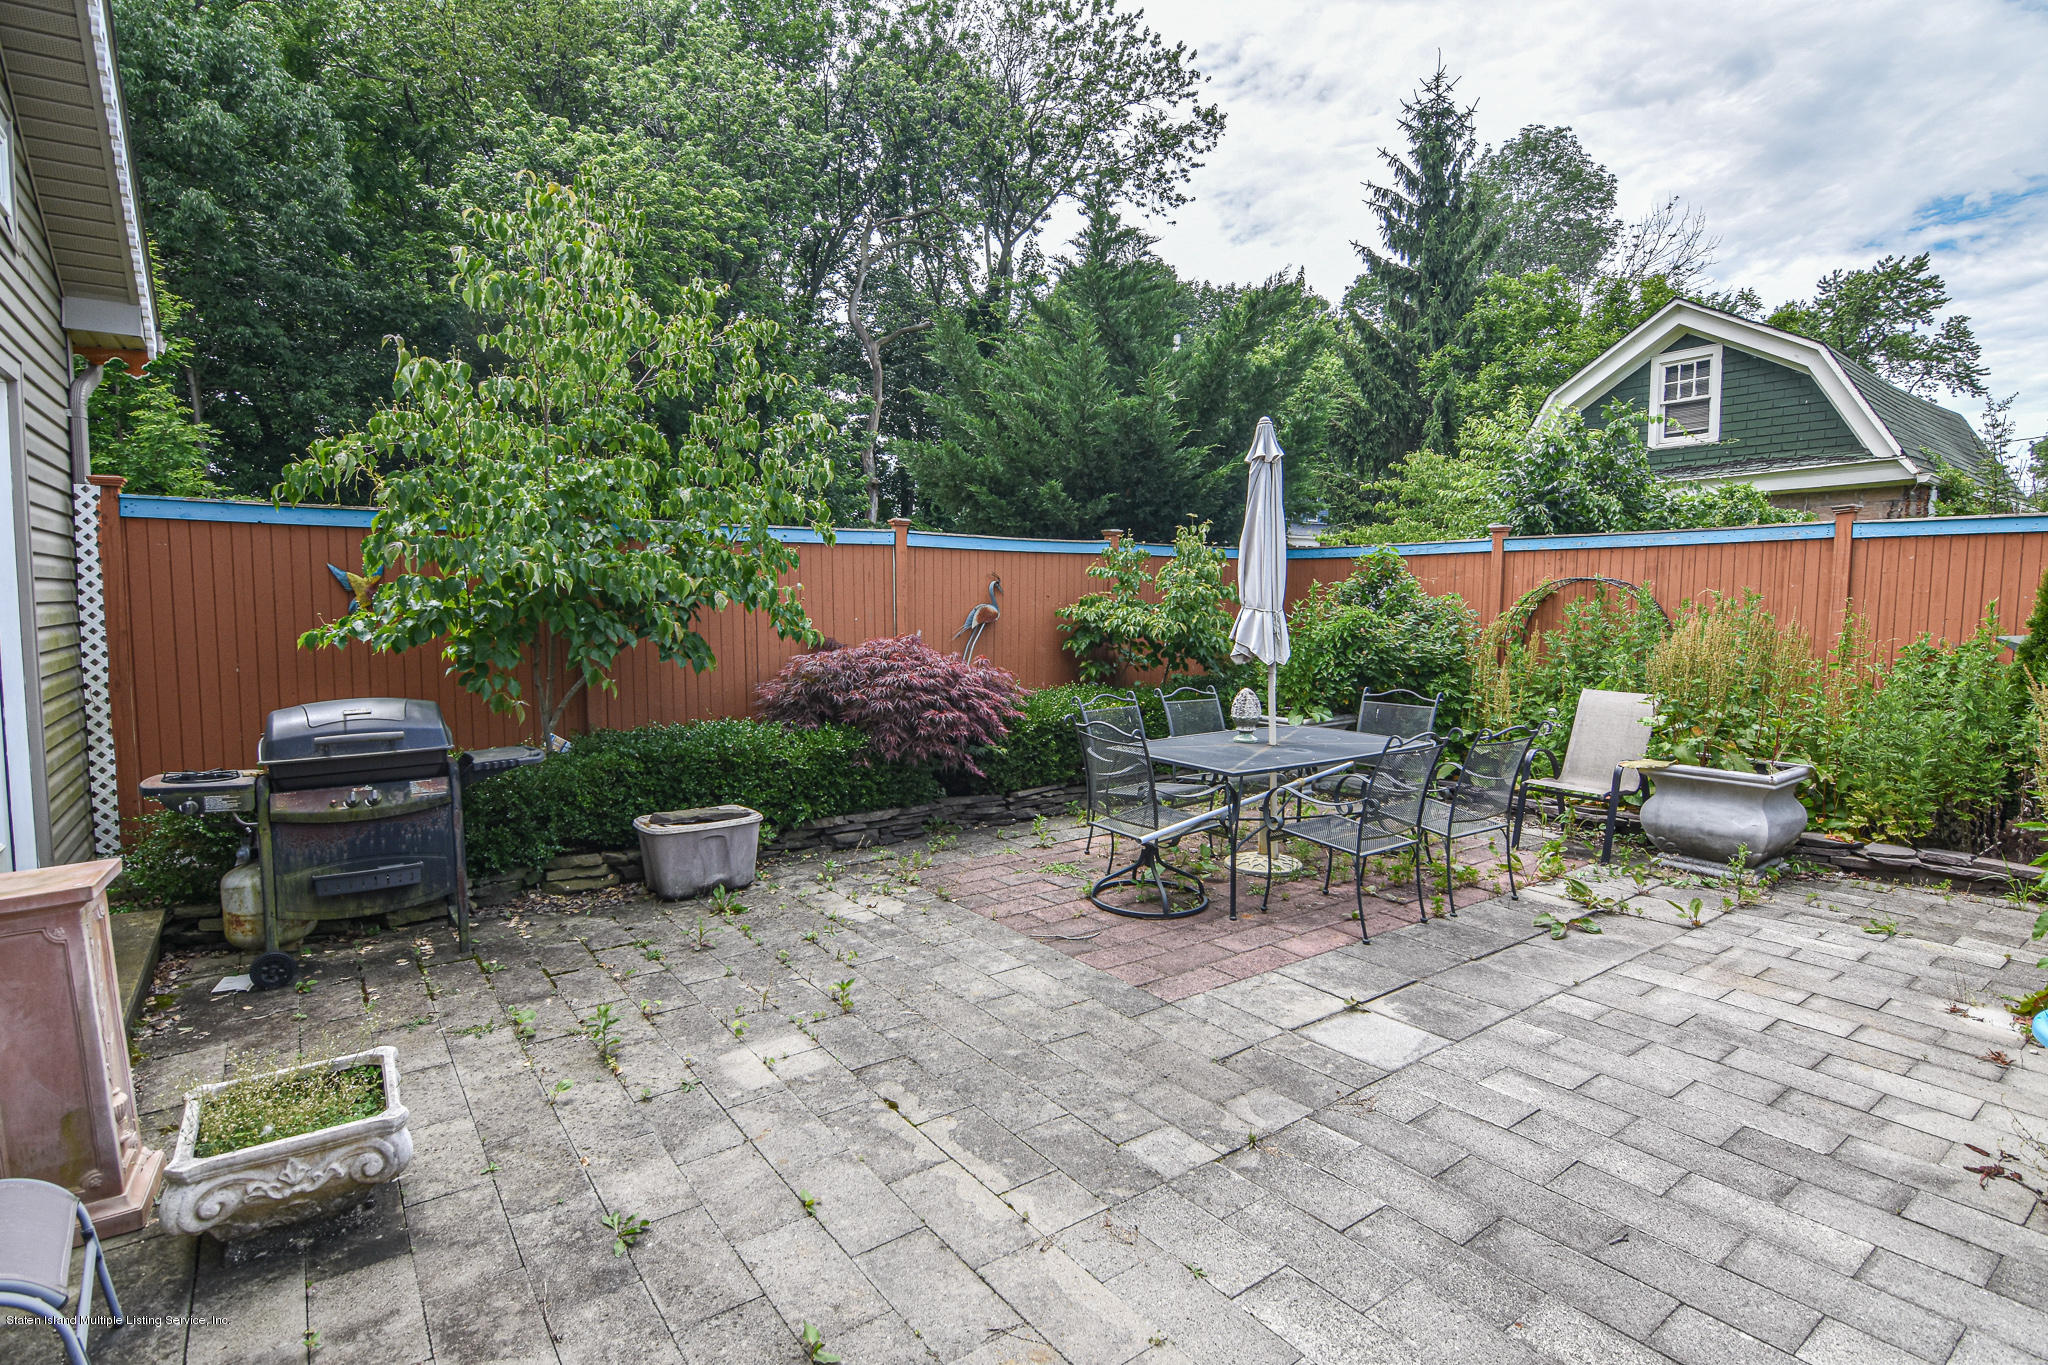 Single Family - Detached 45 Androvette Avenue  Staten Island, NY 10312, MLS-1130190-33